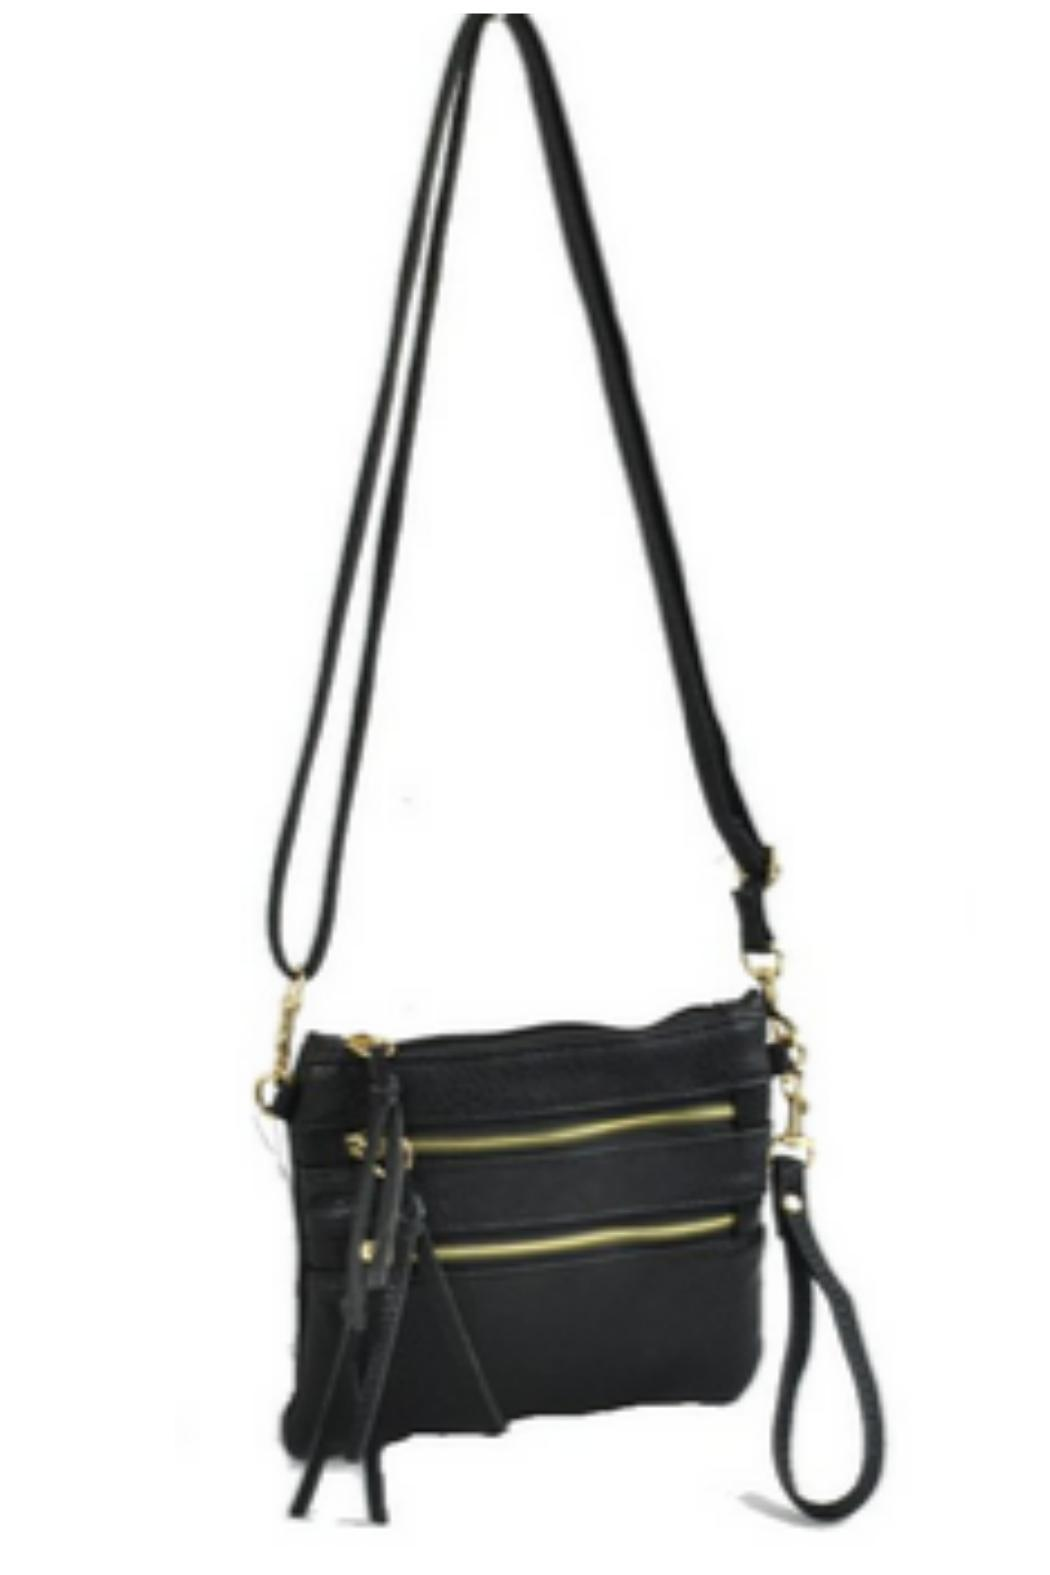 c5f1197a4921 Zipper Crossbody Bag from Illinois by LUXE wearhouse — Shoptiques